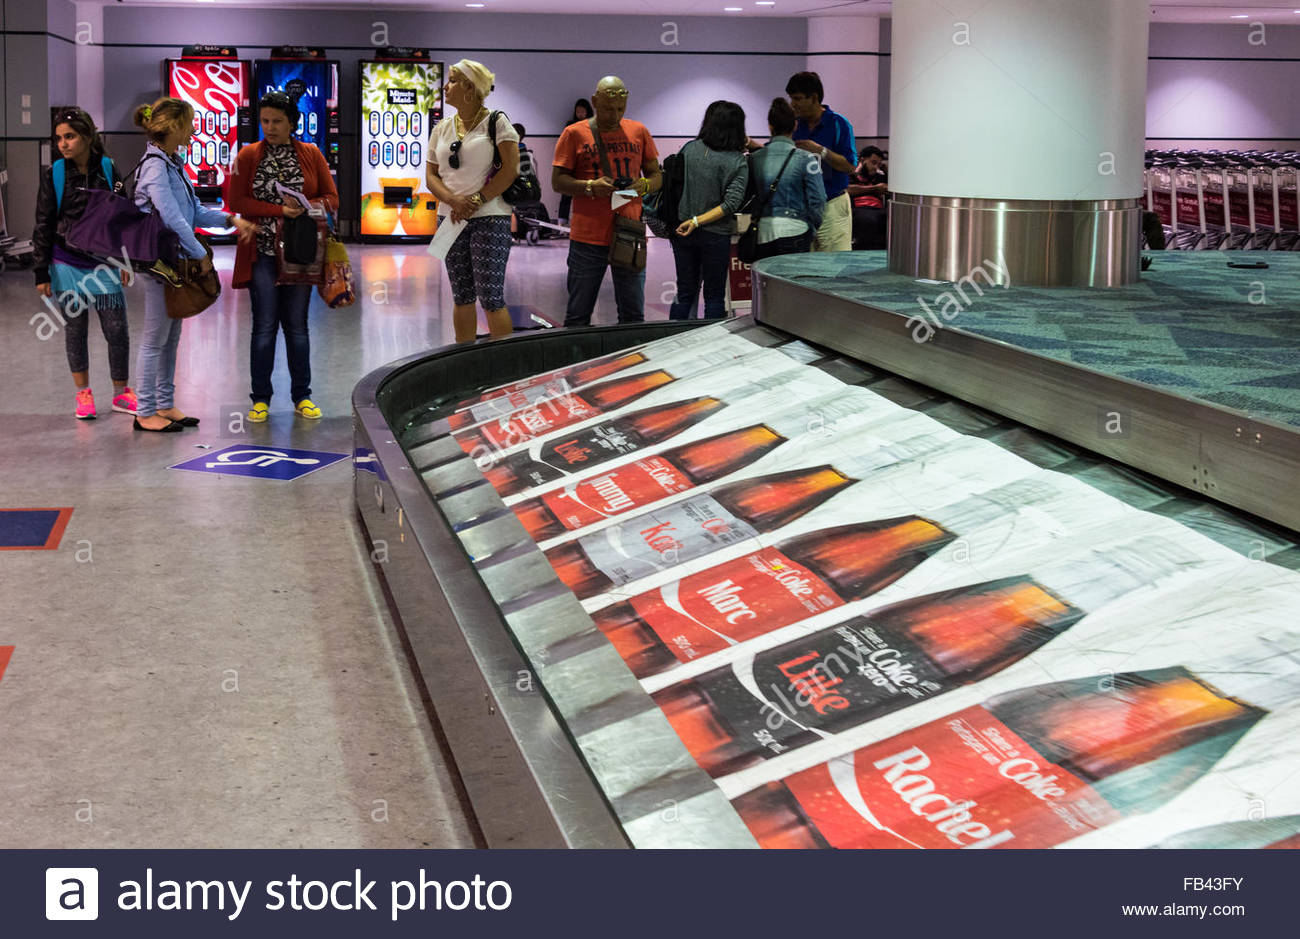 Coca Cola advertisement in a luggage conveyor belt at Pearson International Airport in Toronto, Canada Stock Photo